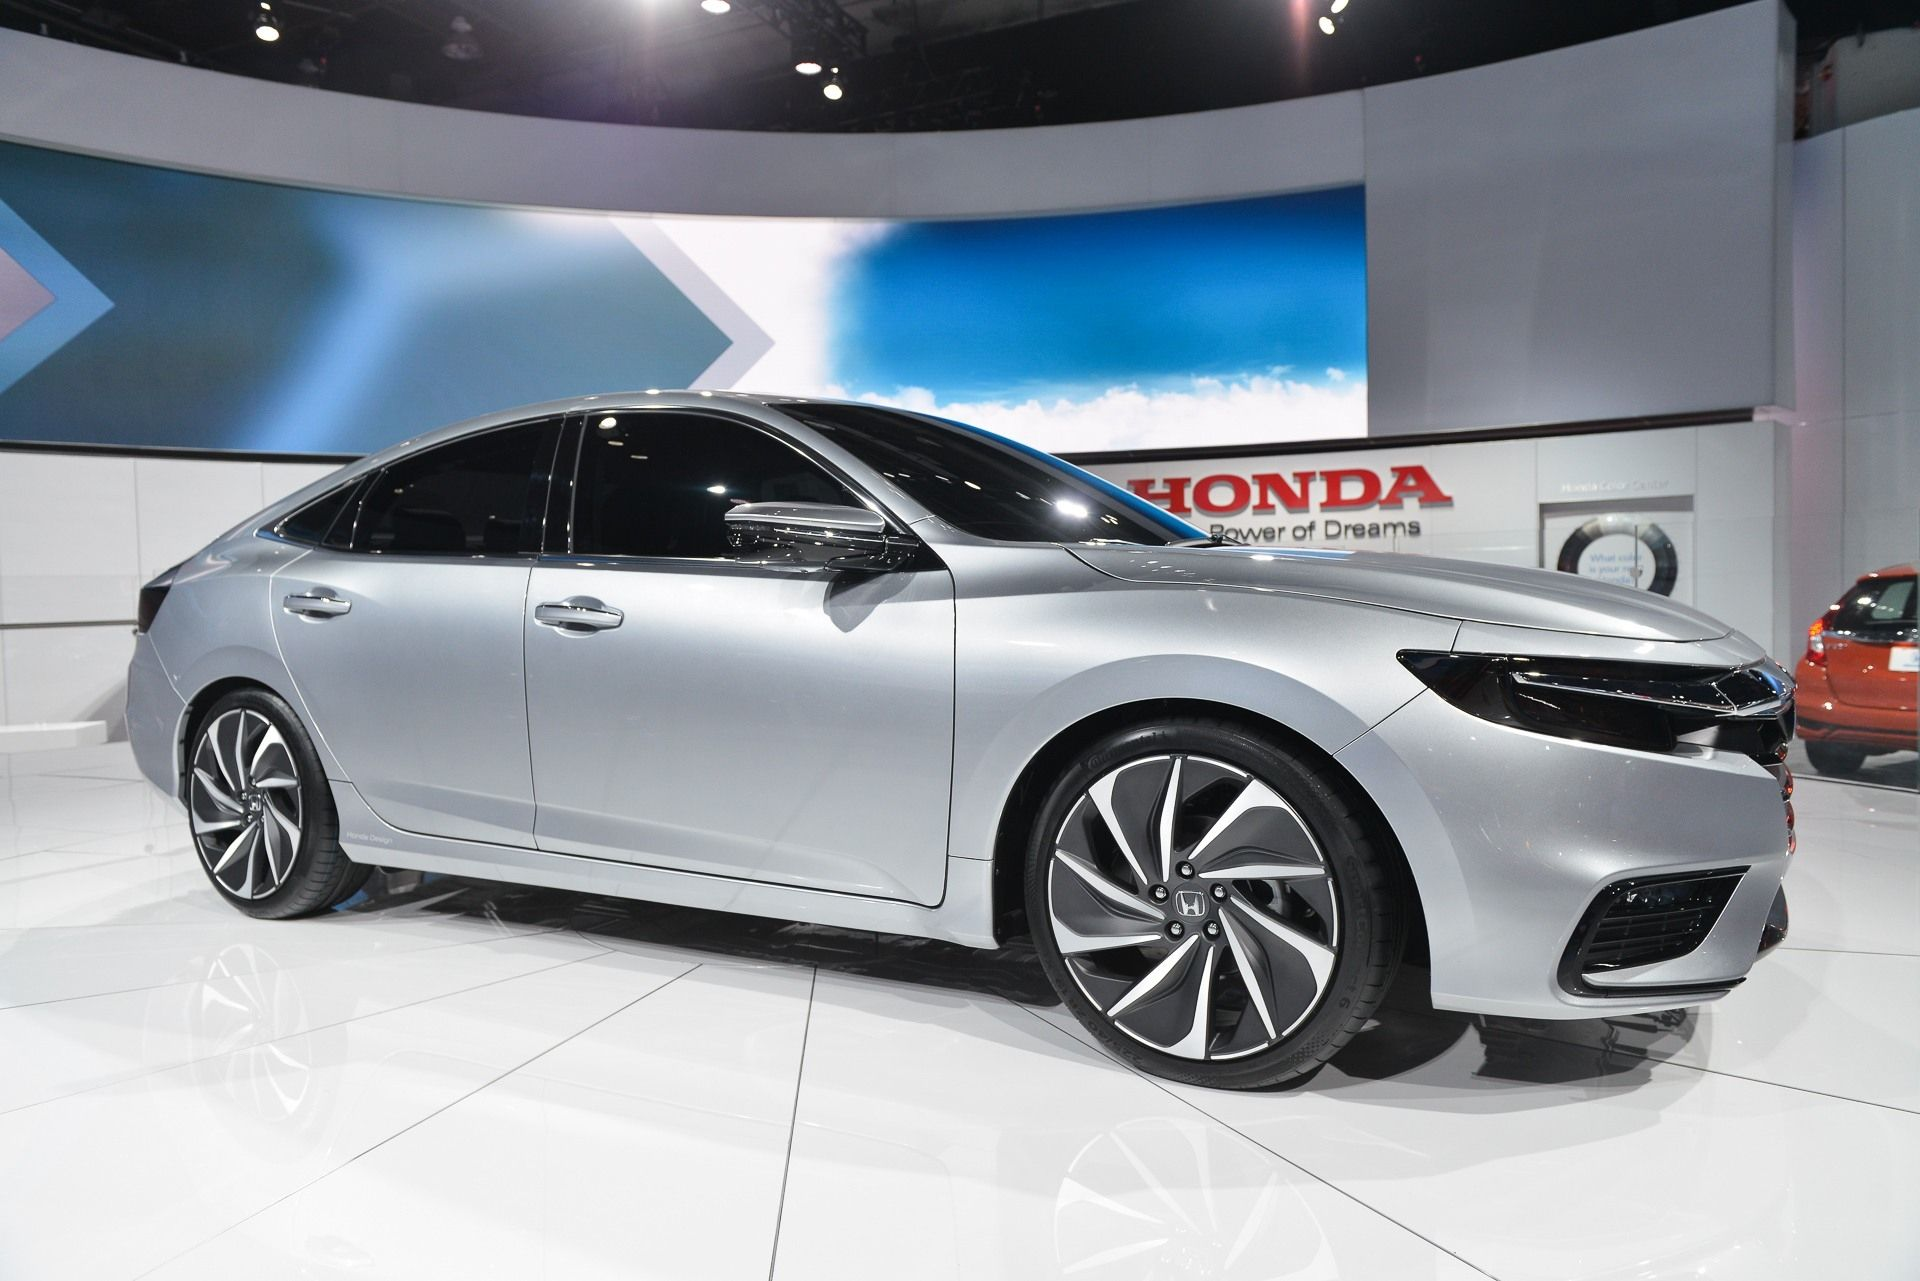 The new Honda civic 2019 got launched on March 7 and is